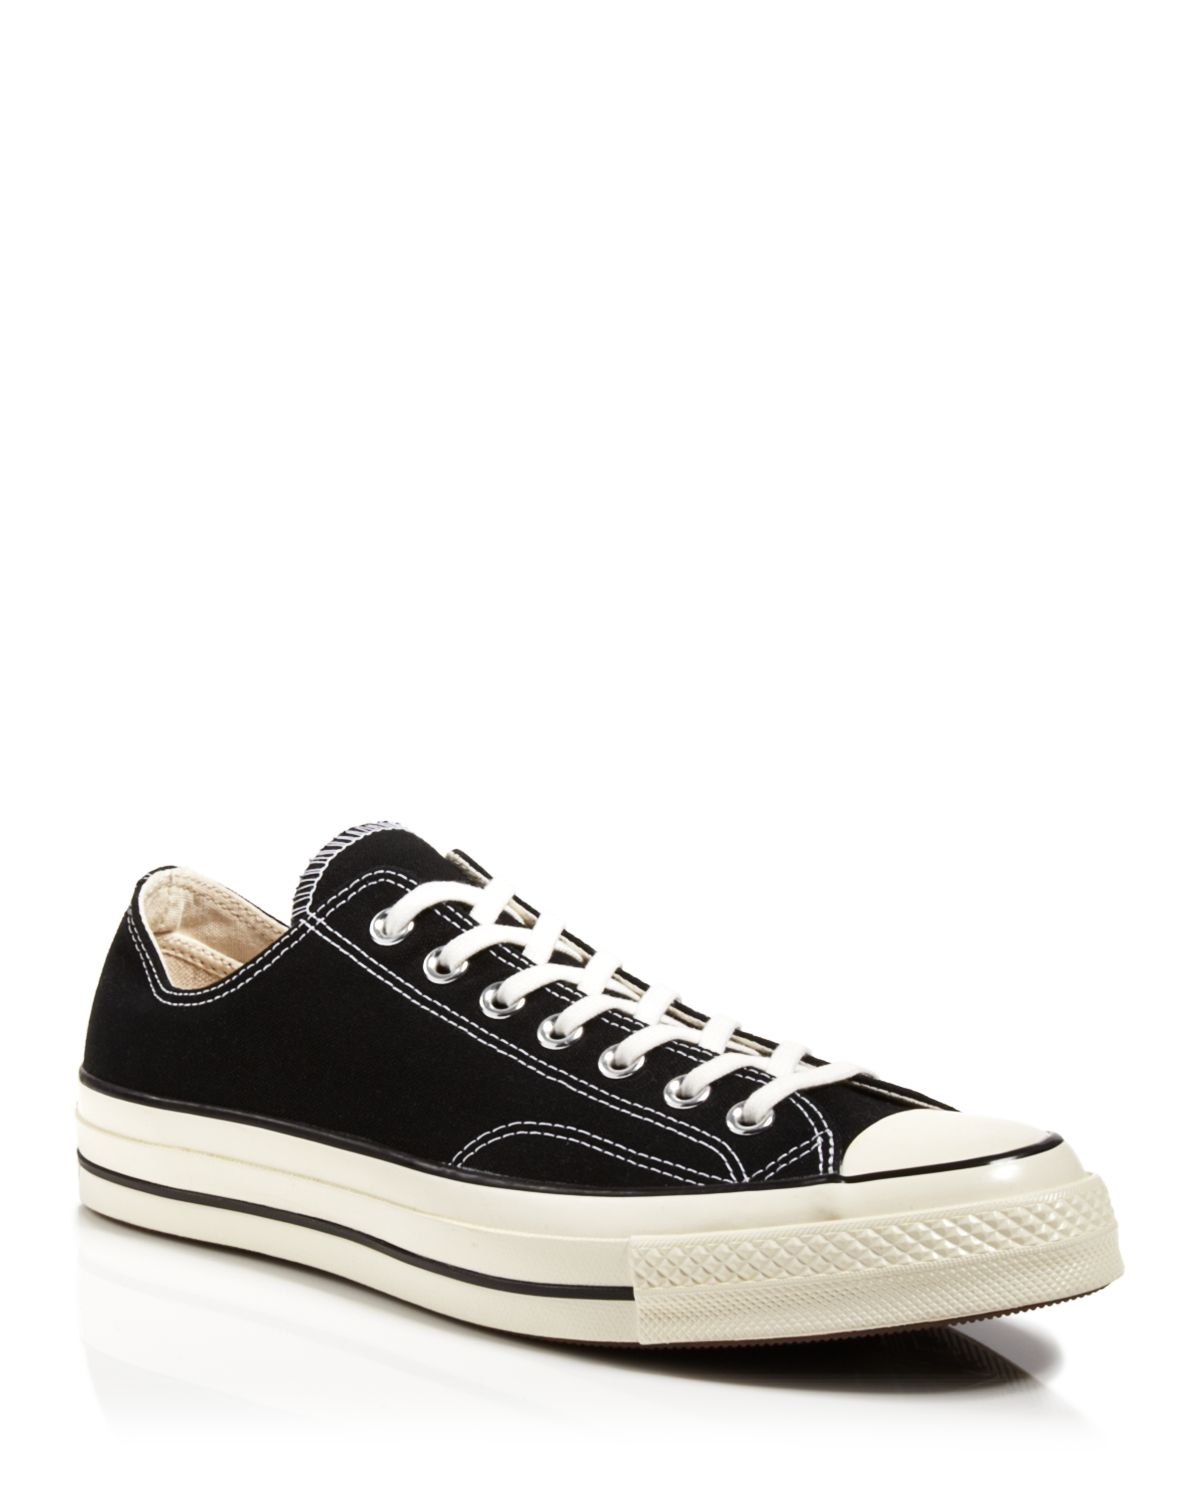 converse low top sneakers 28 images converse chuck all ox low top sneakers converse chuck. Black Bedroom Furniture Sets. Home Design Ideas